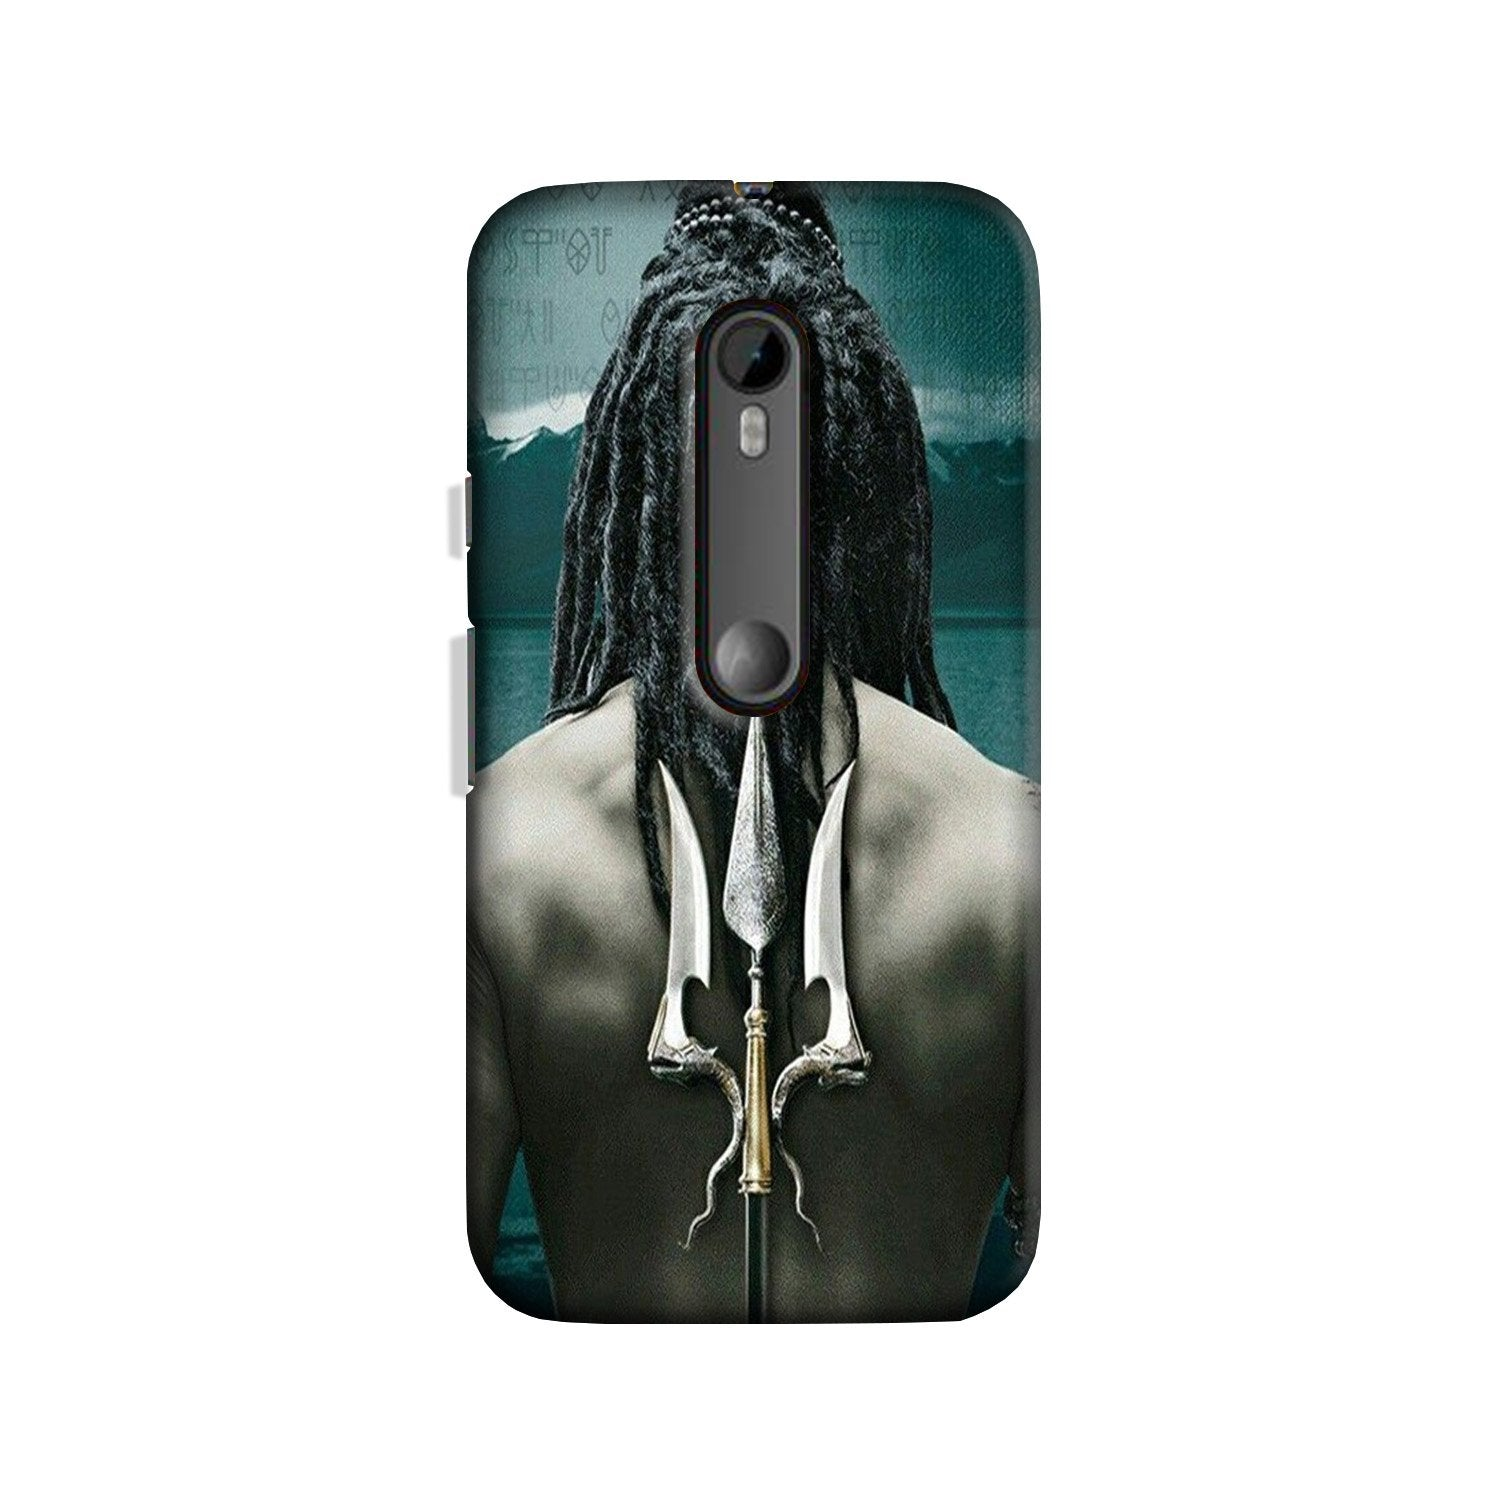 Mahakal Case for Moto G 3rd Gen